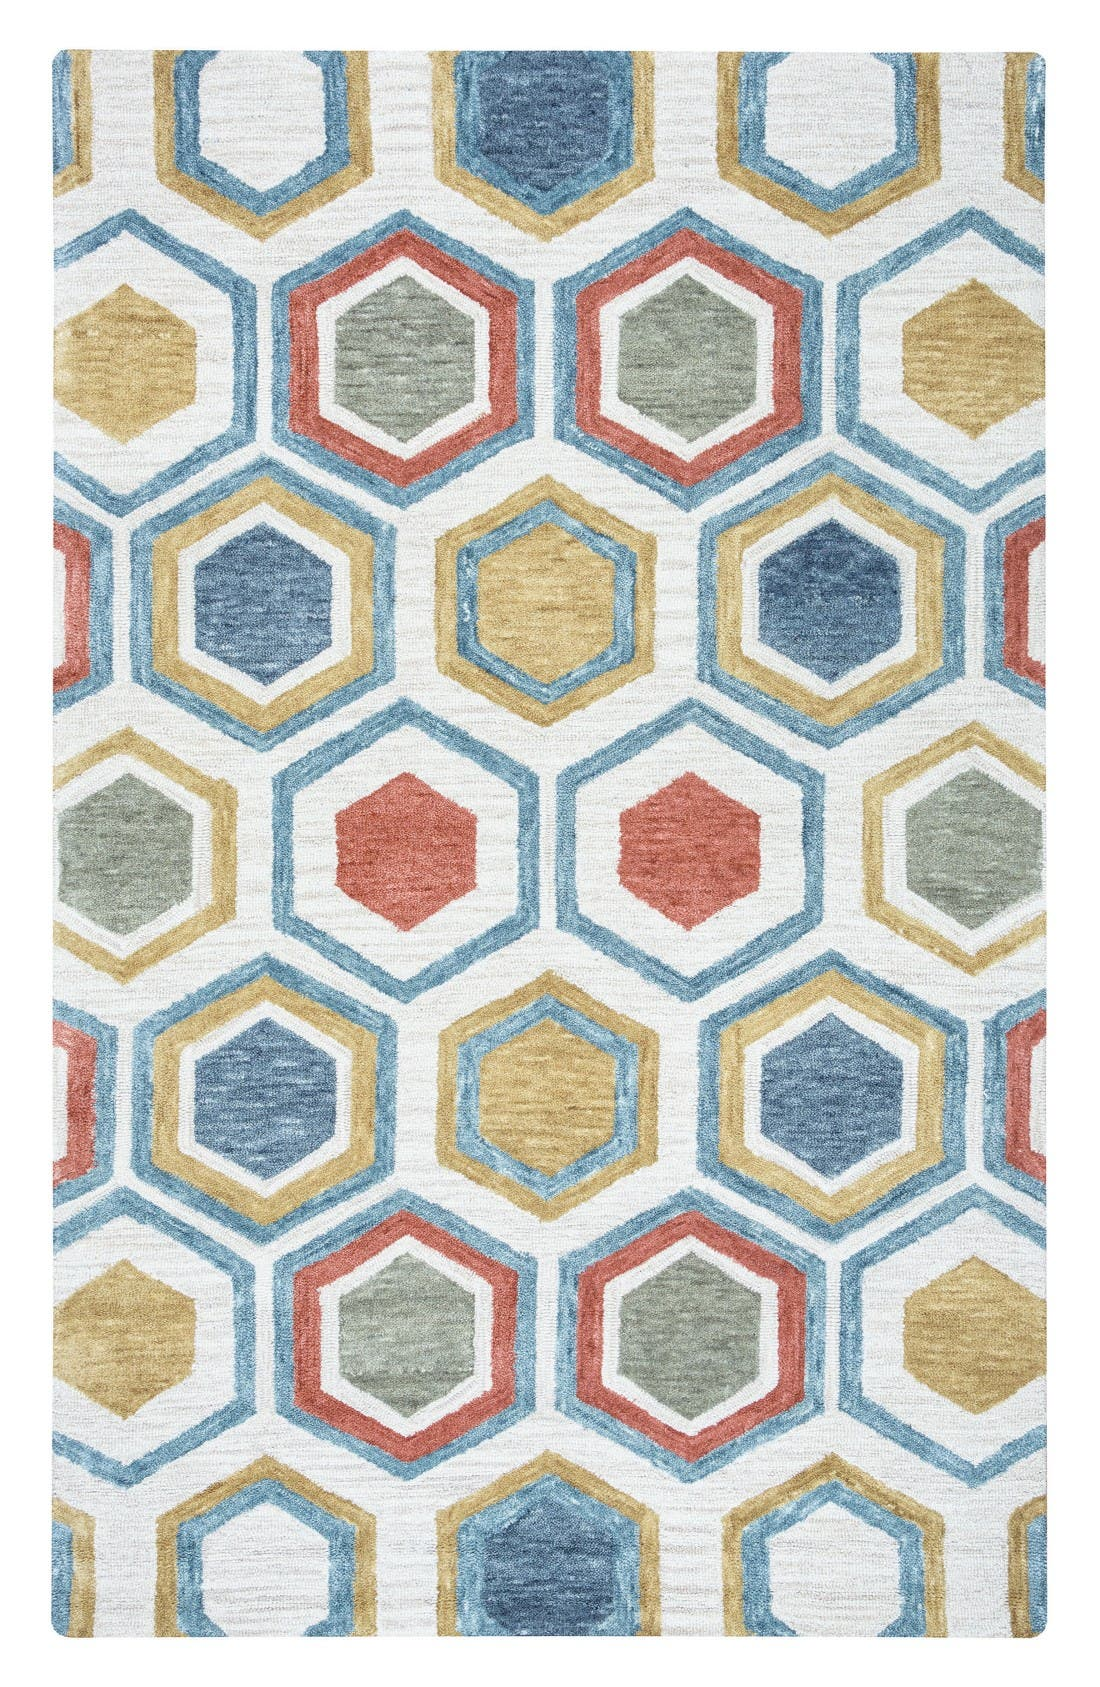 'Lancaster Geometric' Hand Tufted Wool Area Rug,                             Main thumbnail 1, color,                             Grey/ Multi